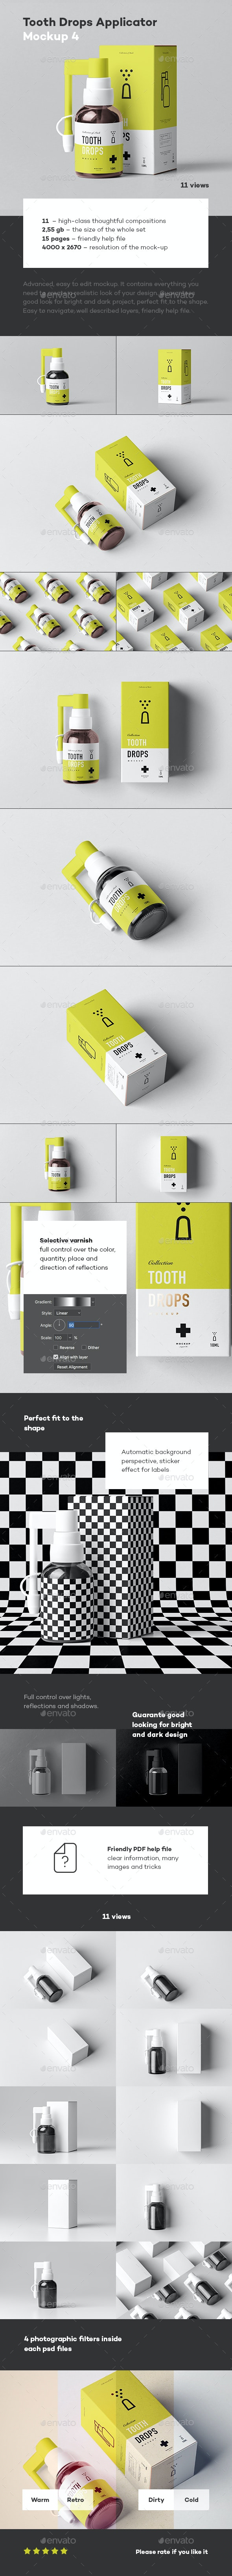 Tooth Drops Applicator Mock-up - Miscellaneous Packaging